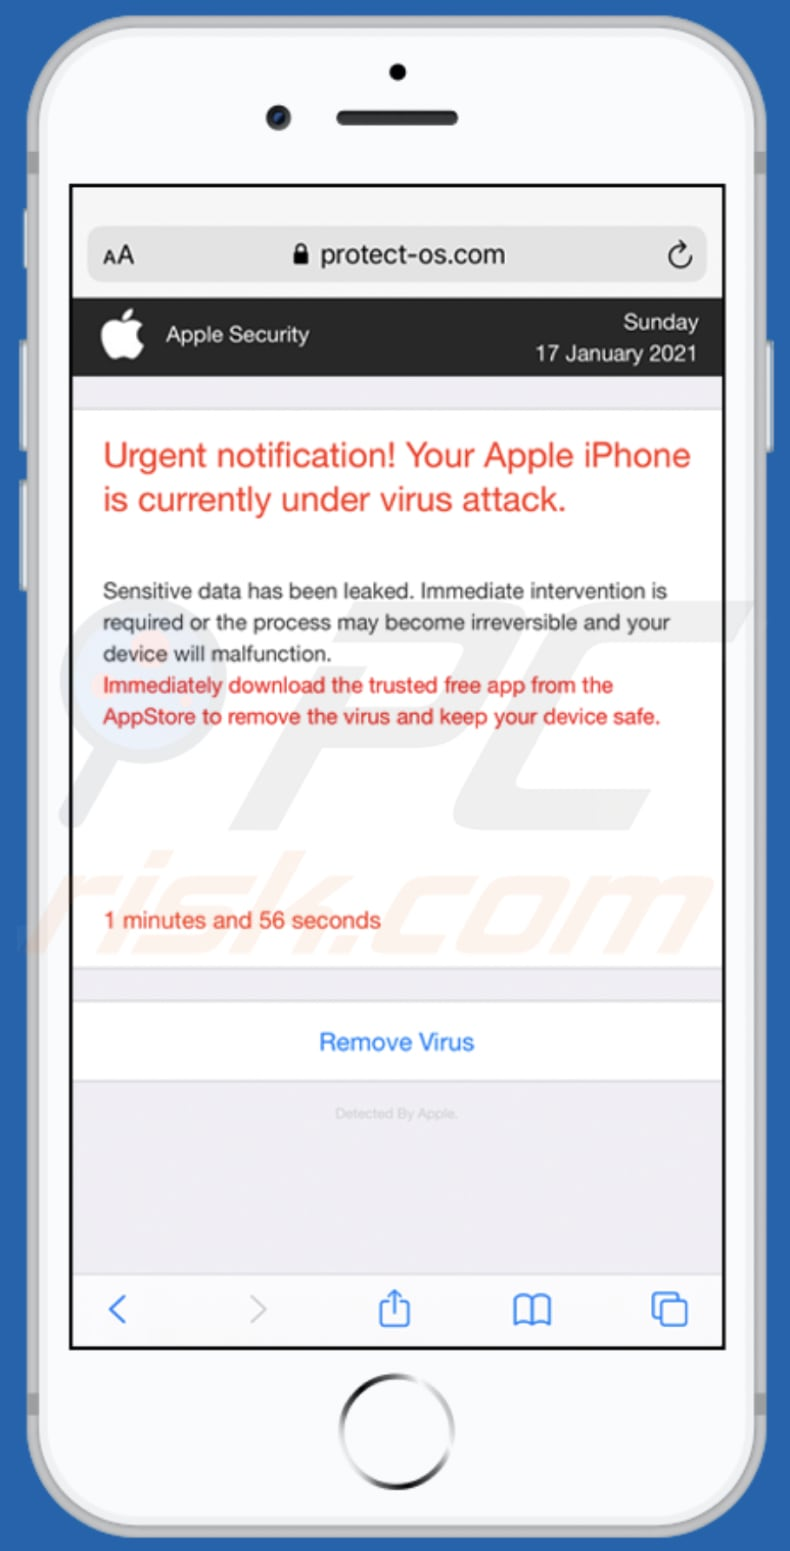 Der Your Apple iPhone is currently under virus attack Betrug